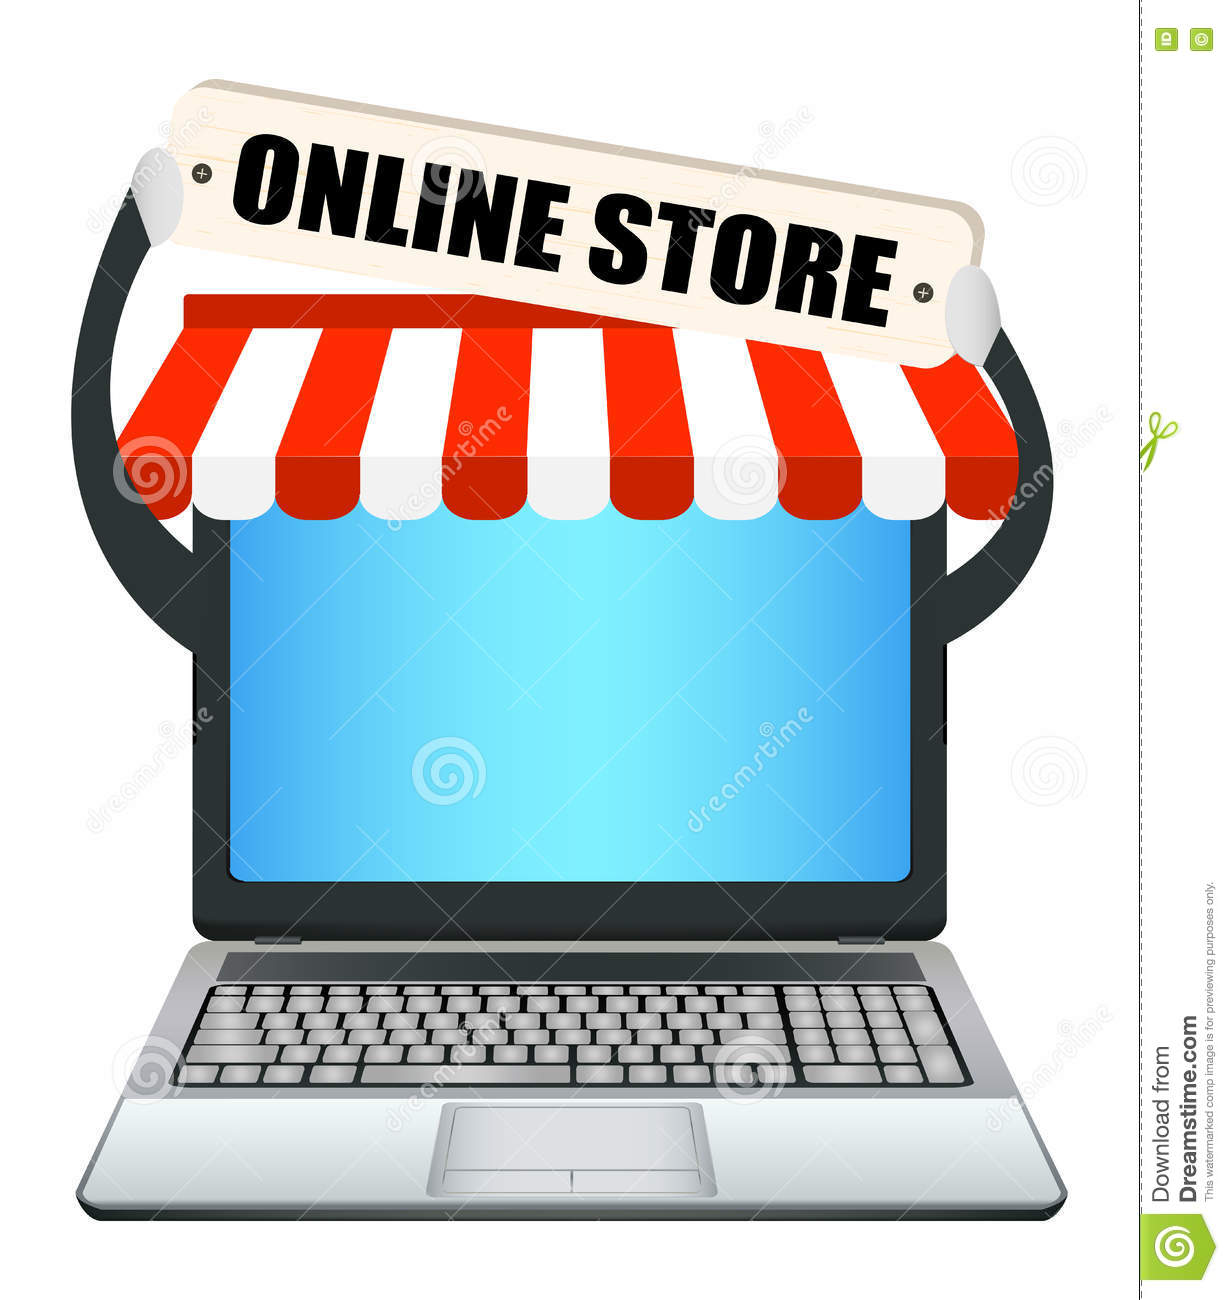 Laptop with online store banner stock illustration image for Online art stores us